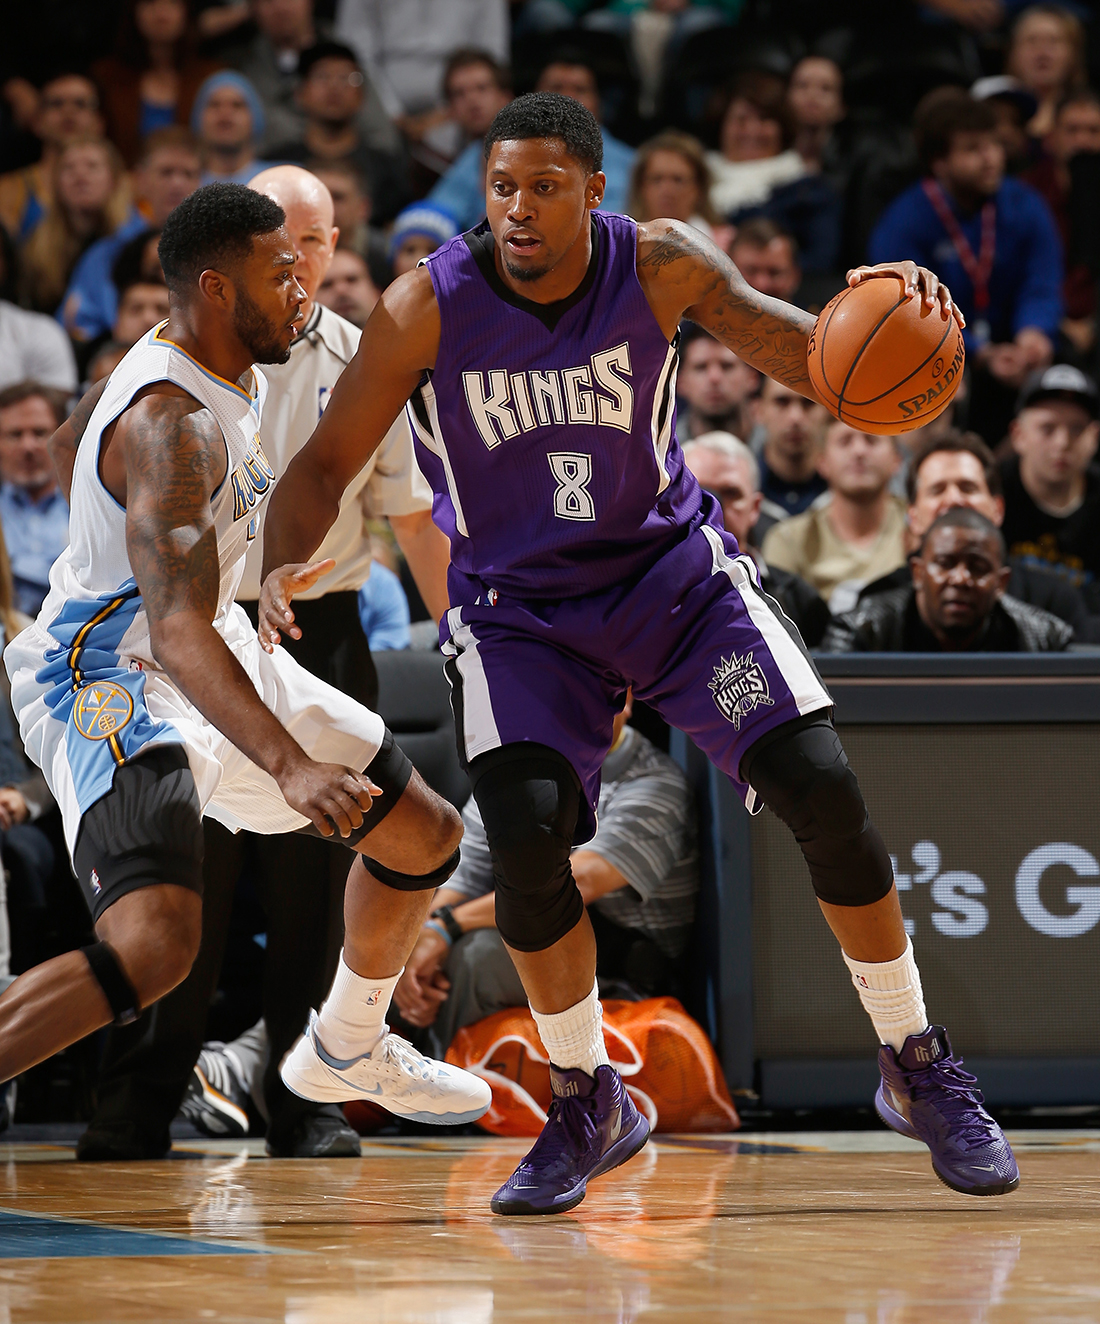 Los Kings amaran a Rudy Gay